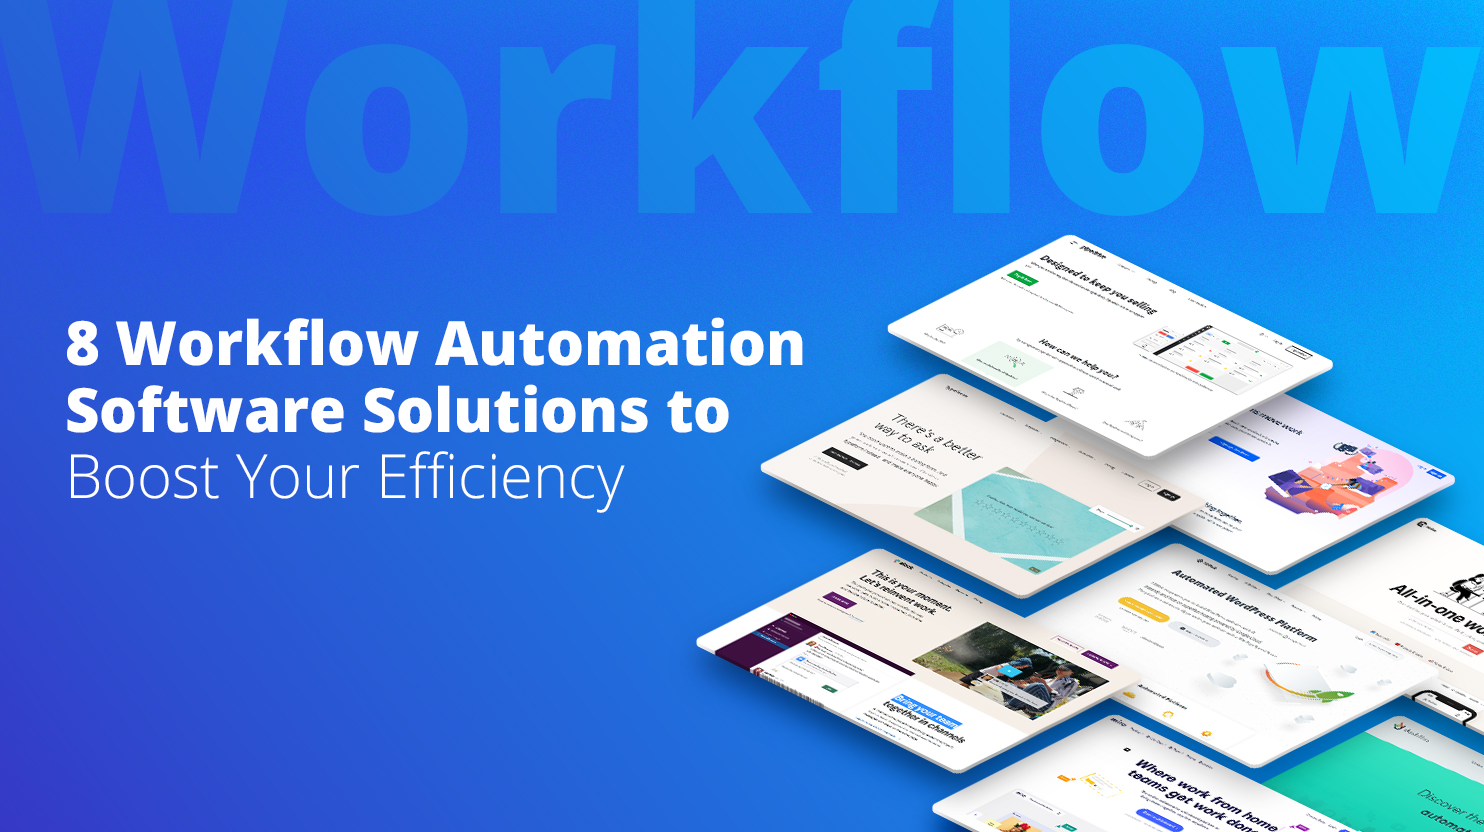 Hompages of different Workflow Automation Software providers